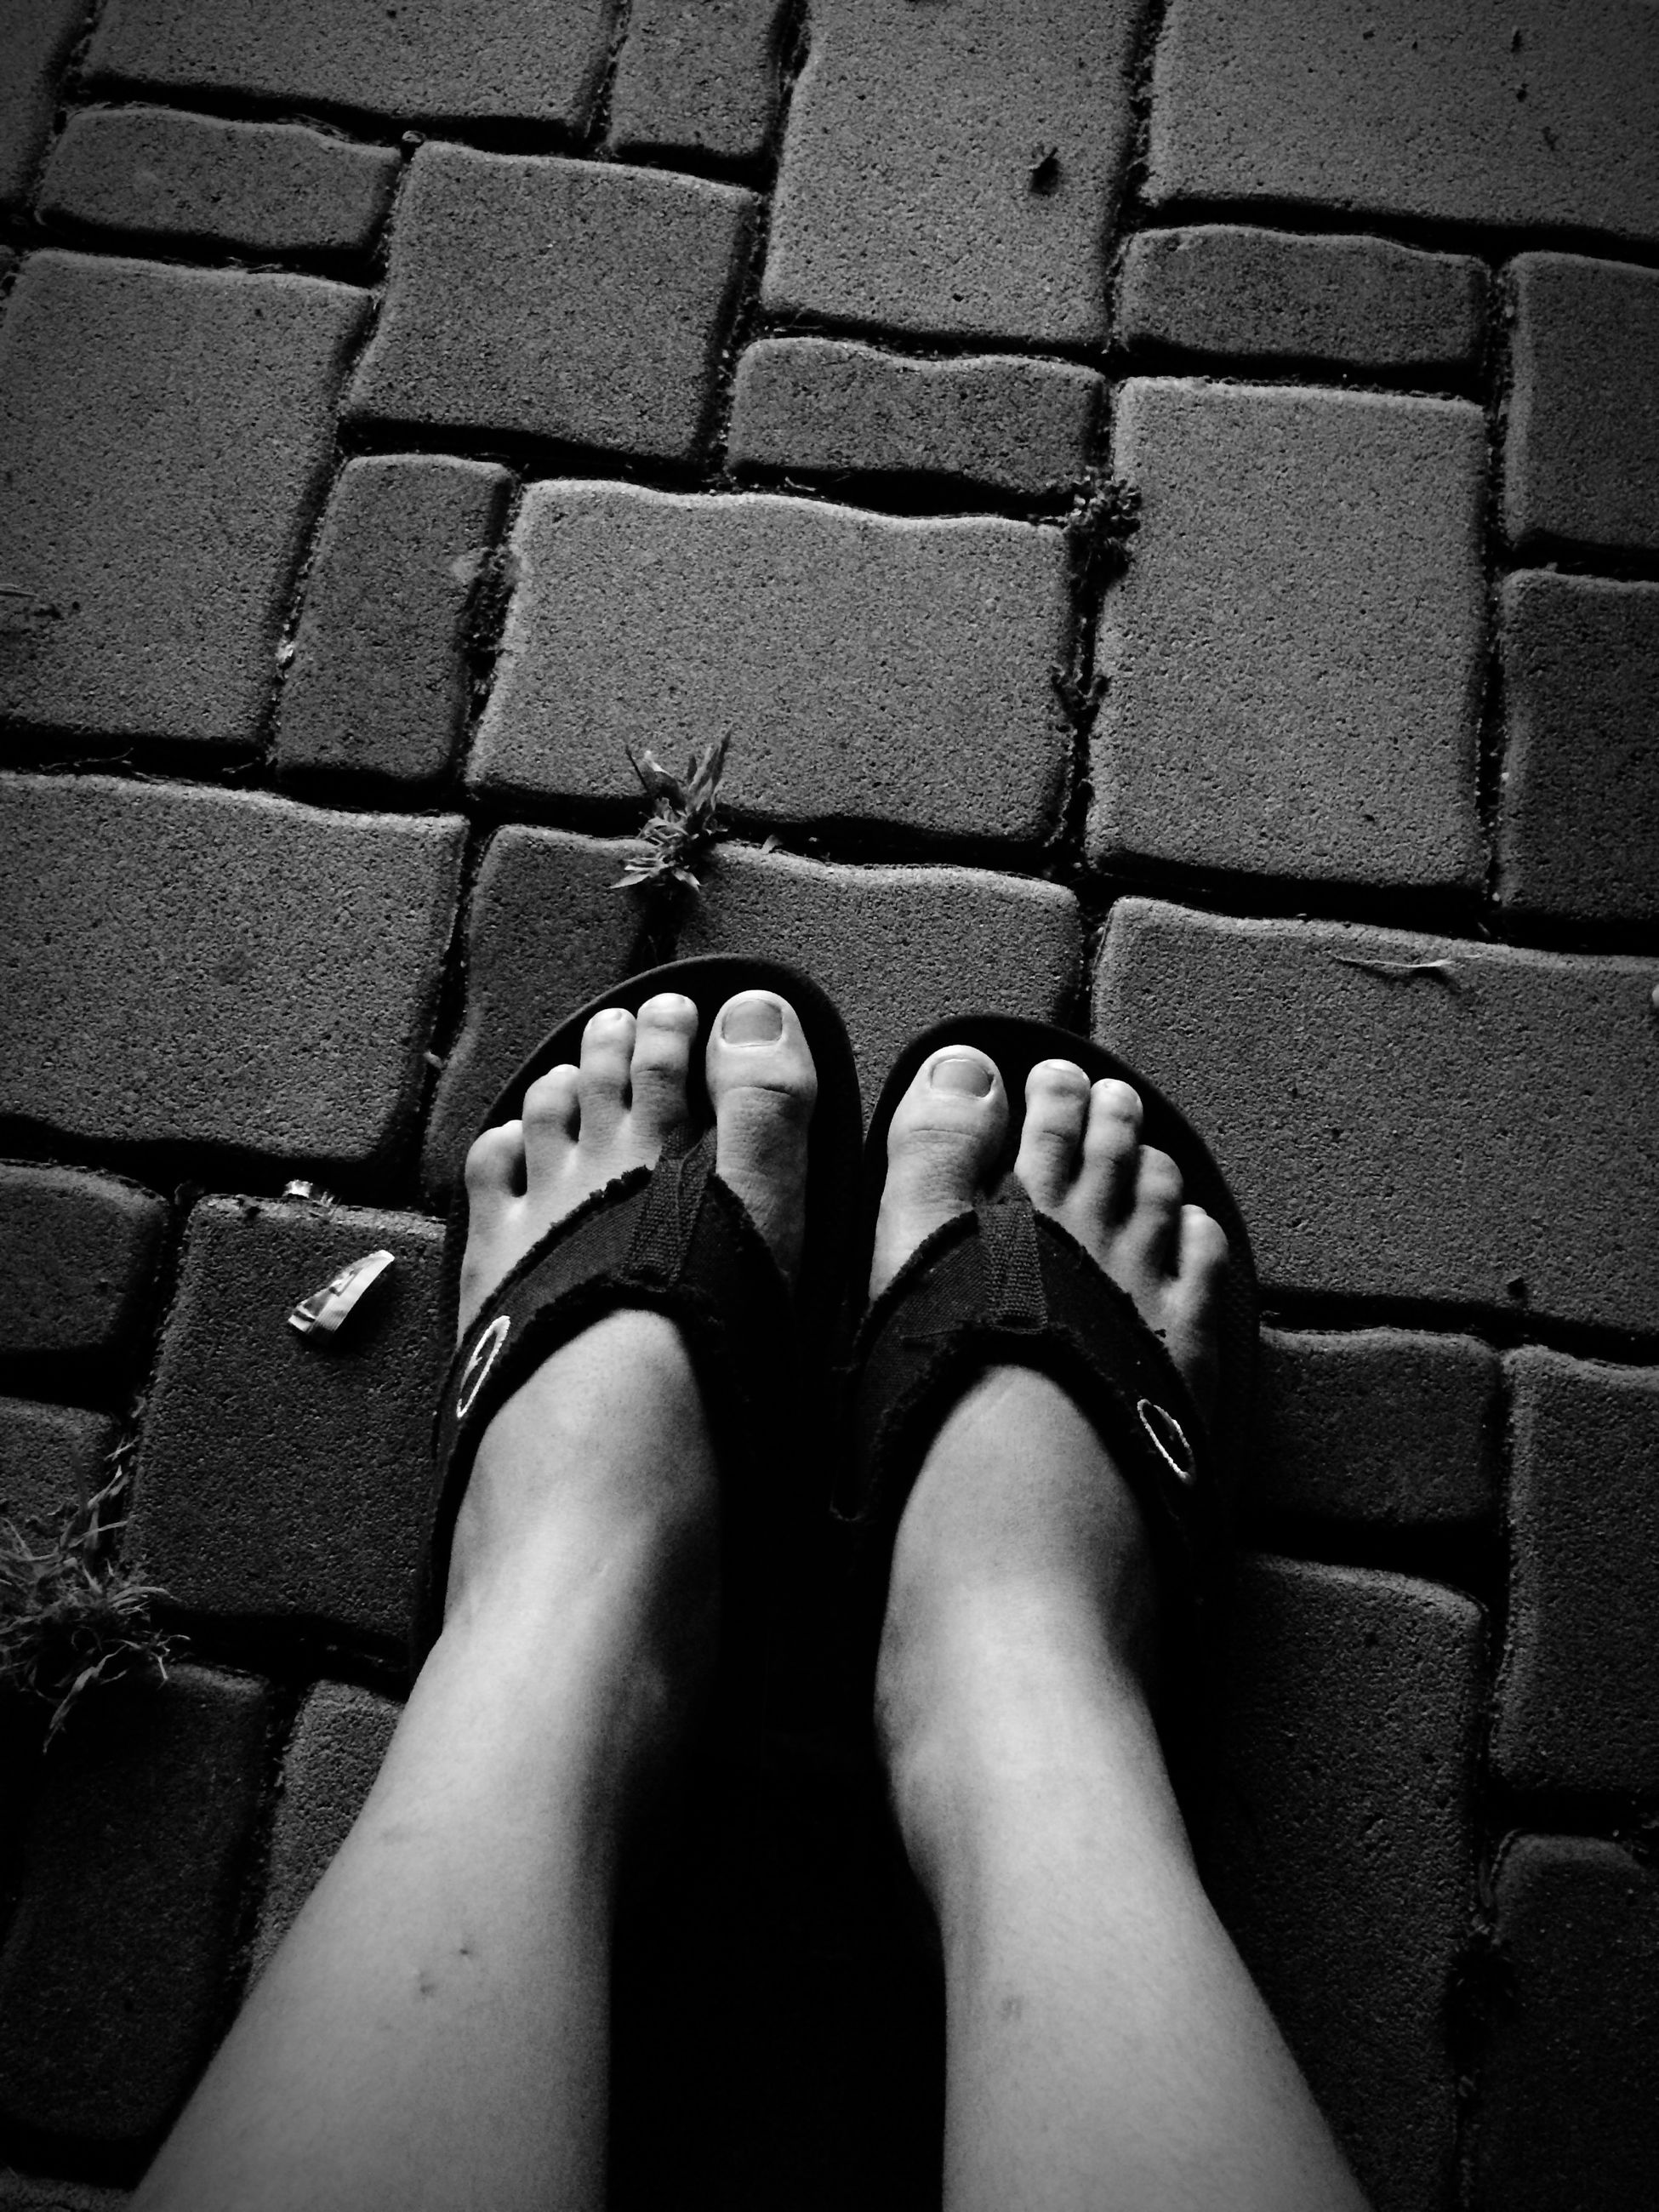 low section, person, shoe, personal perspective, human foot, high angle view, footwear, standing, lifestyles, directly above, street, tiled floor, leisure activity, cobblestone, human limb, part of